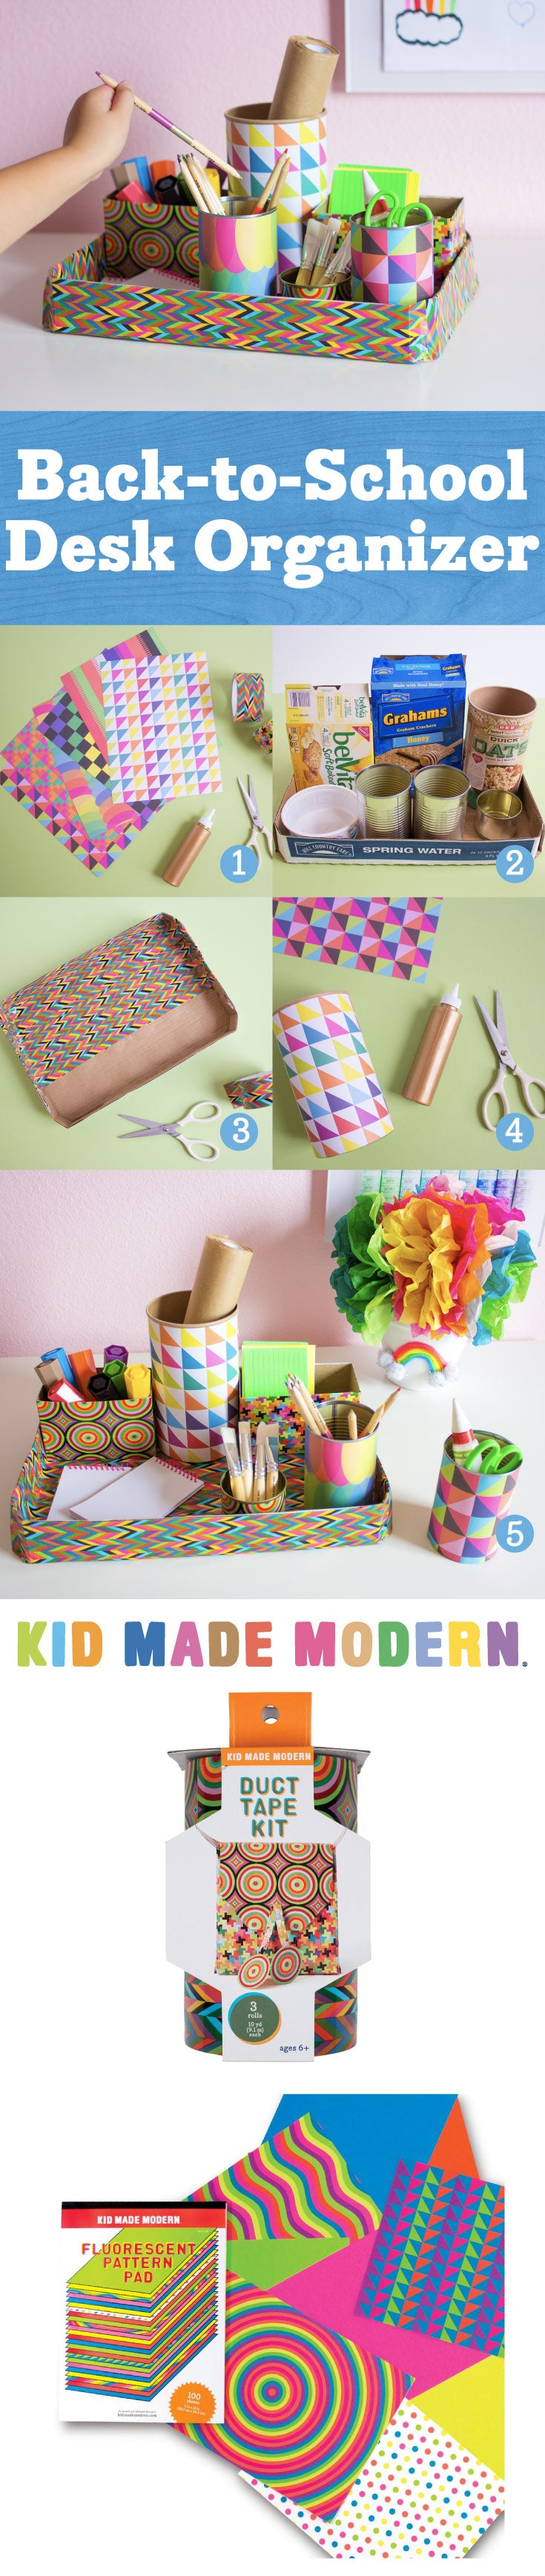 Desk Organizer Pinterest